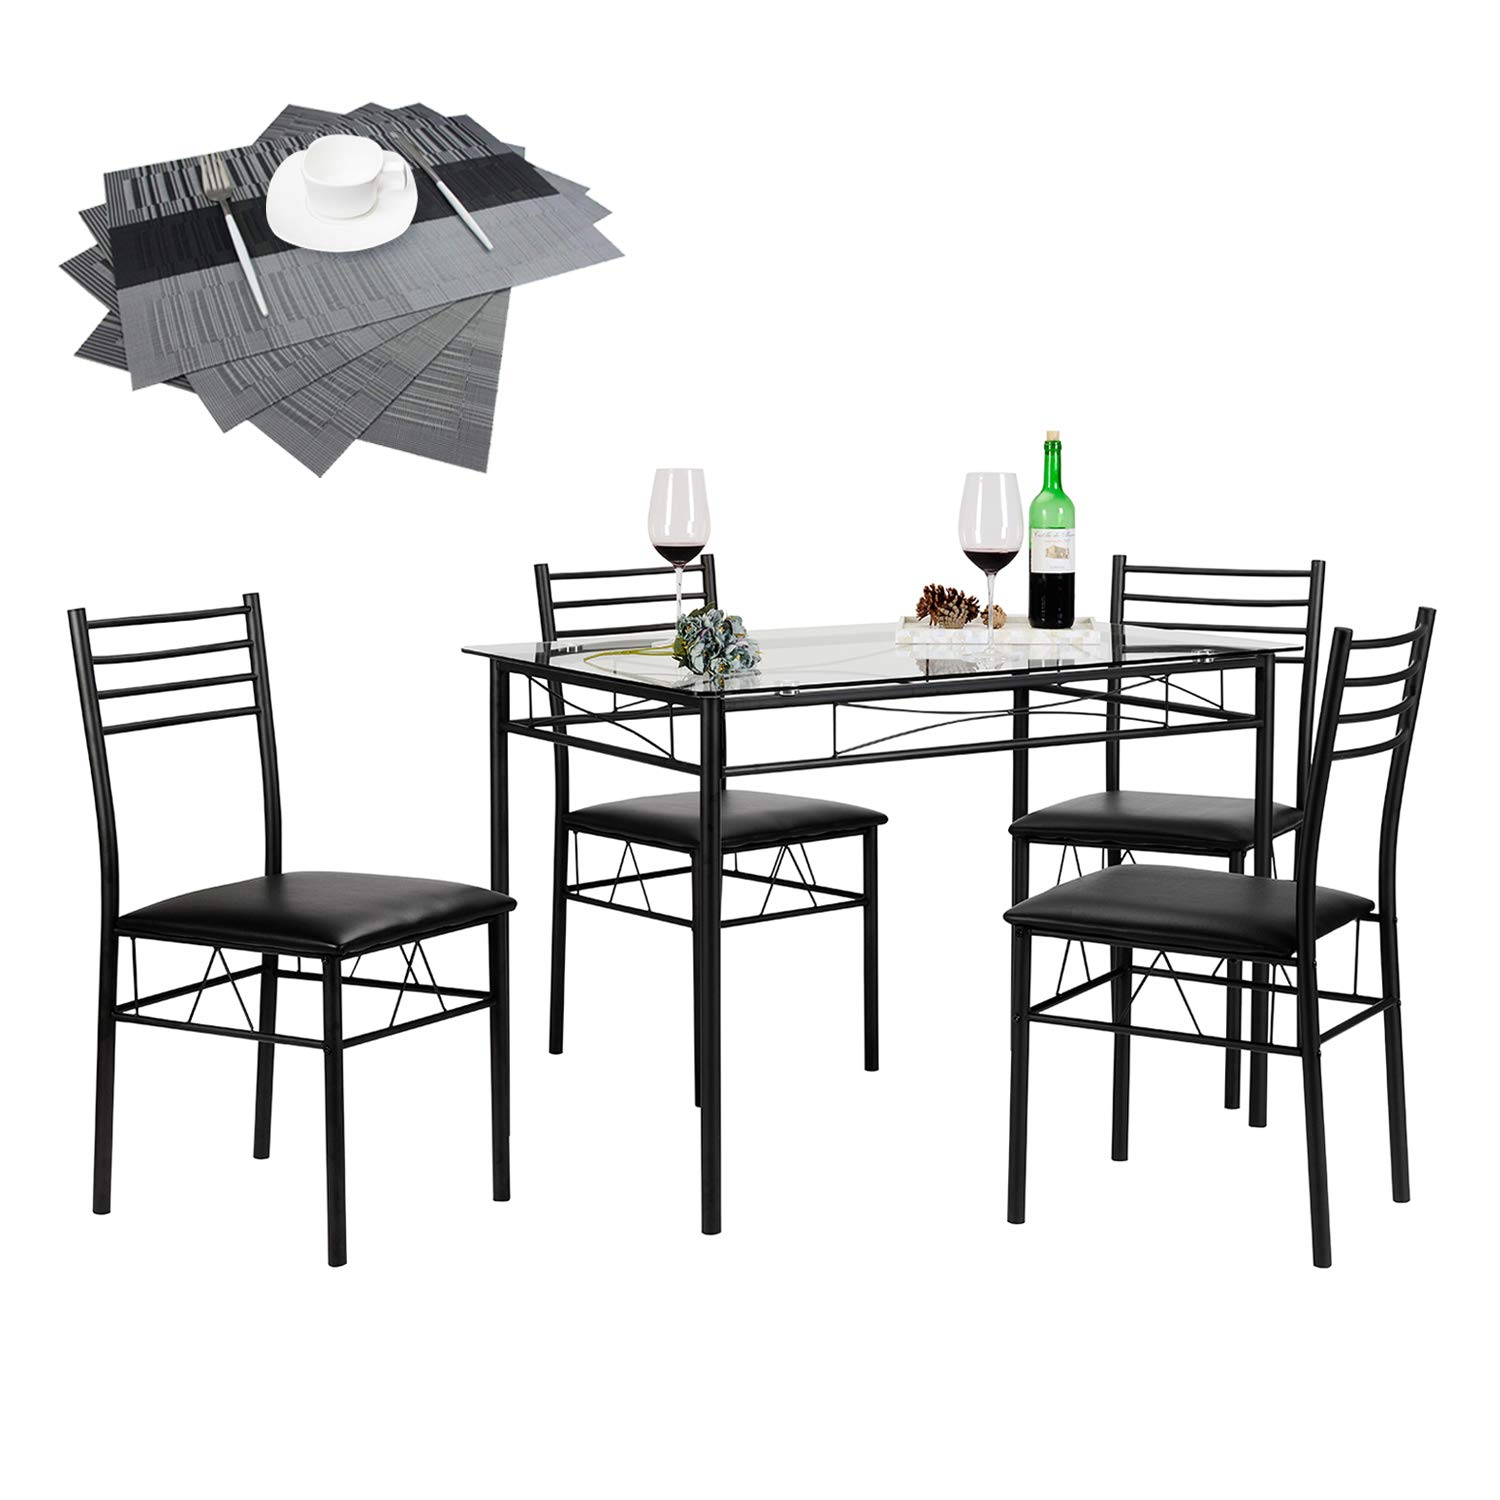 Amazoncom Vecelo 5 Piece Dining Table Set With Chairs 4 Placemats